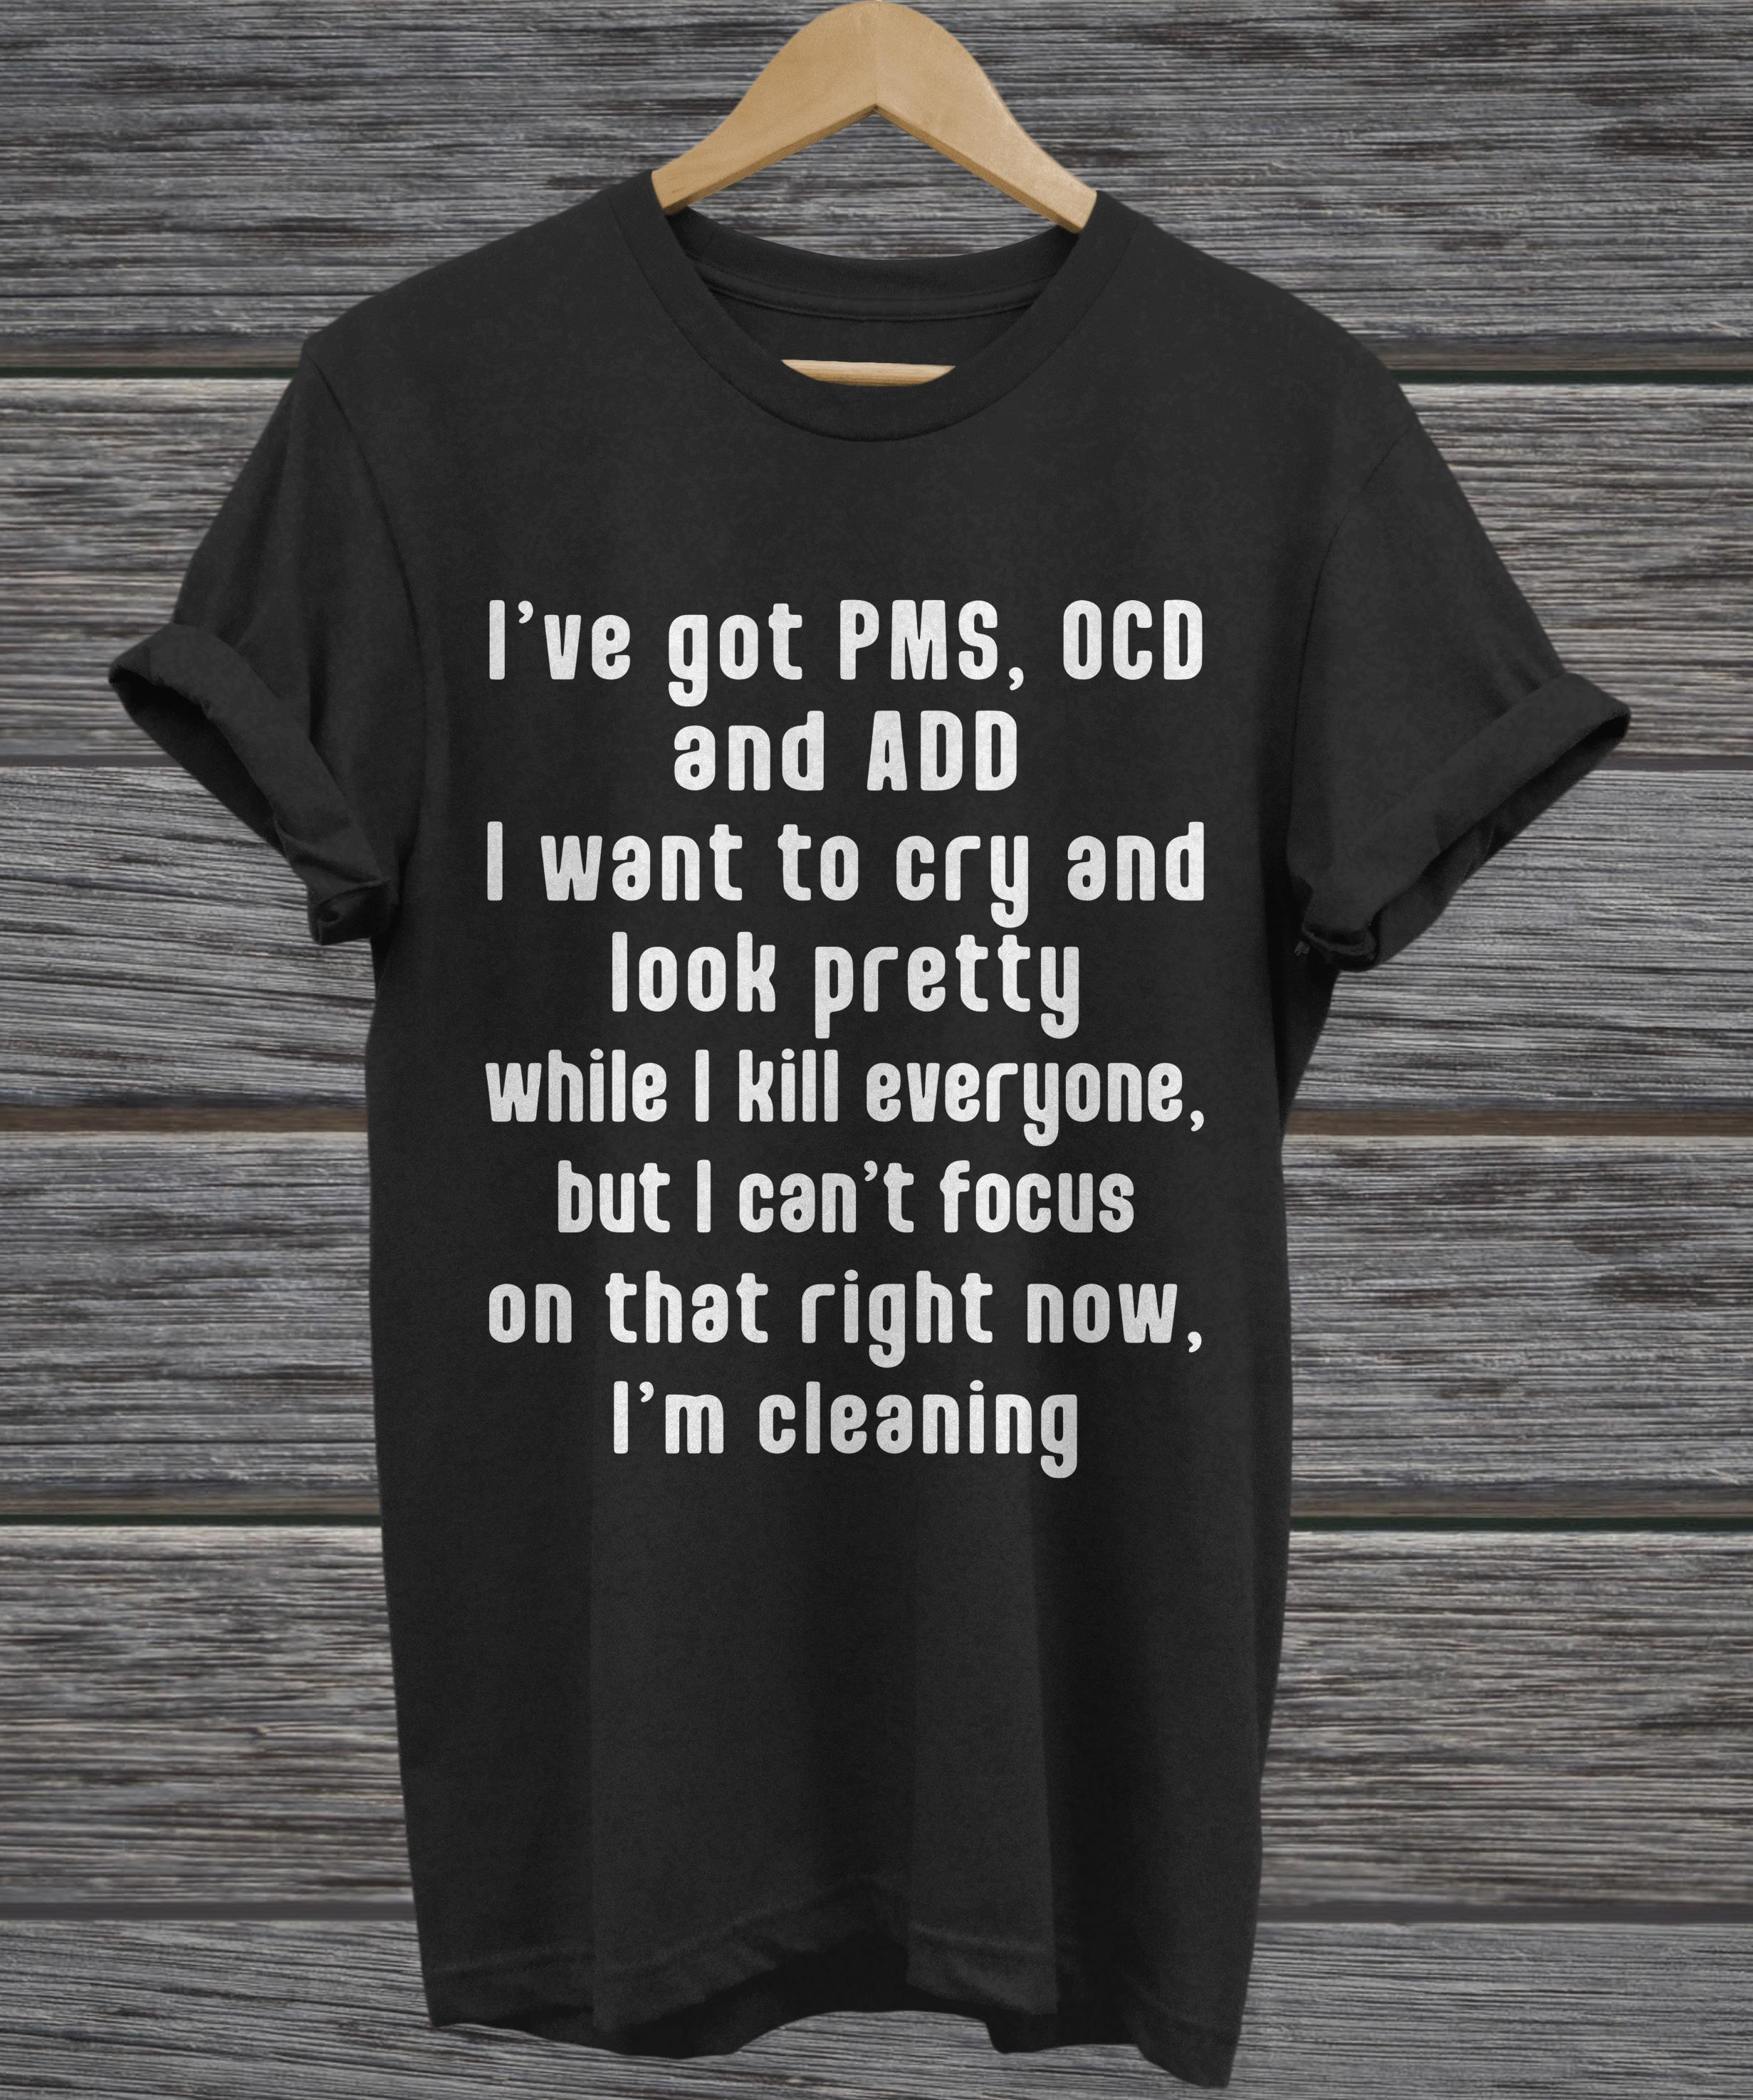 I've got PMS, OCD and ADD I want to cry and look pretty hoodie